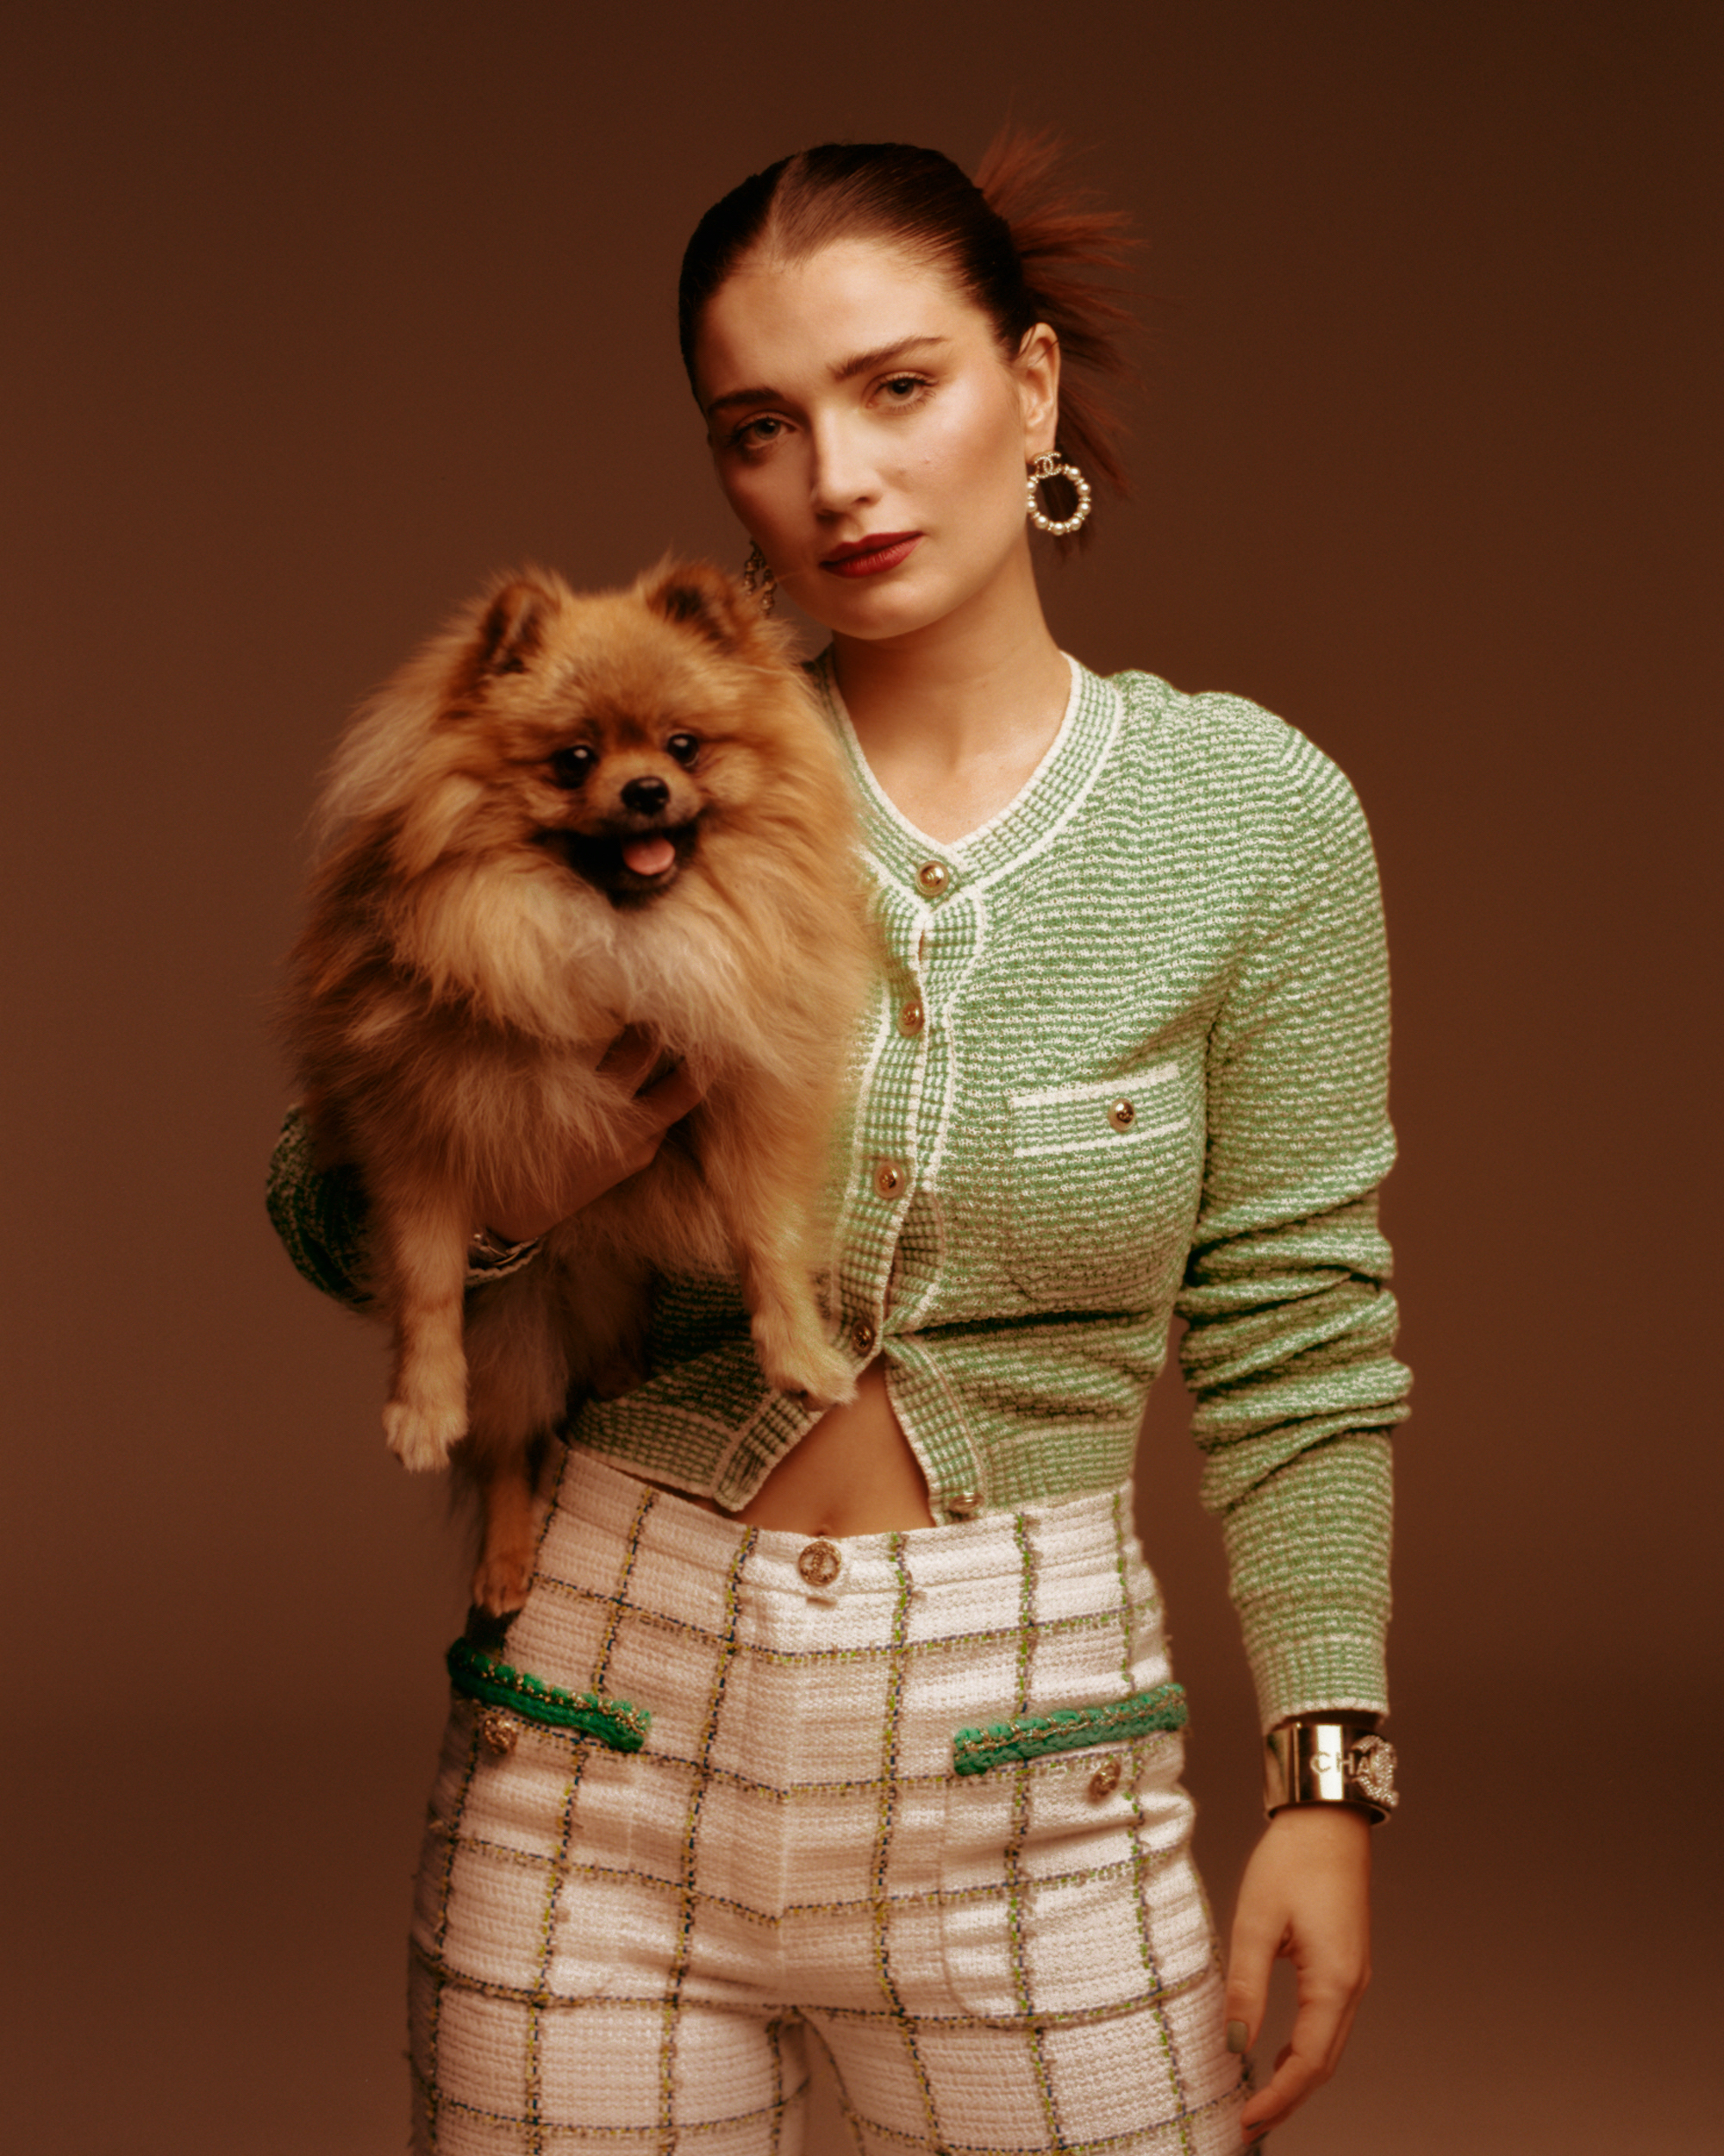 Eve hewson standing with dog wearing green cardigan and skirt